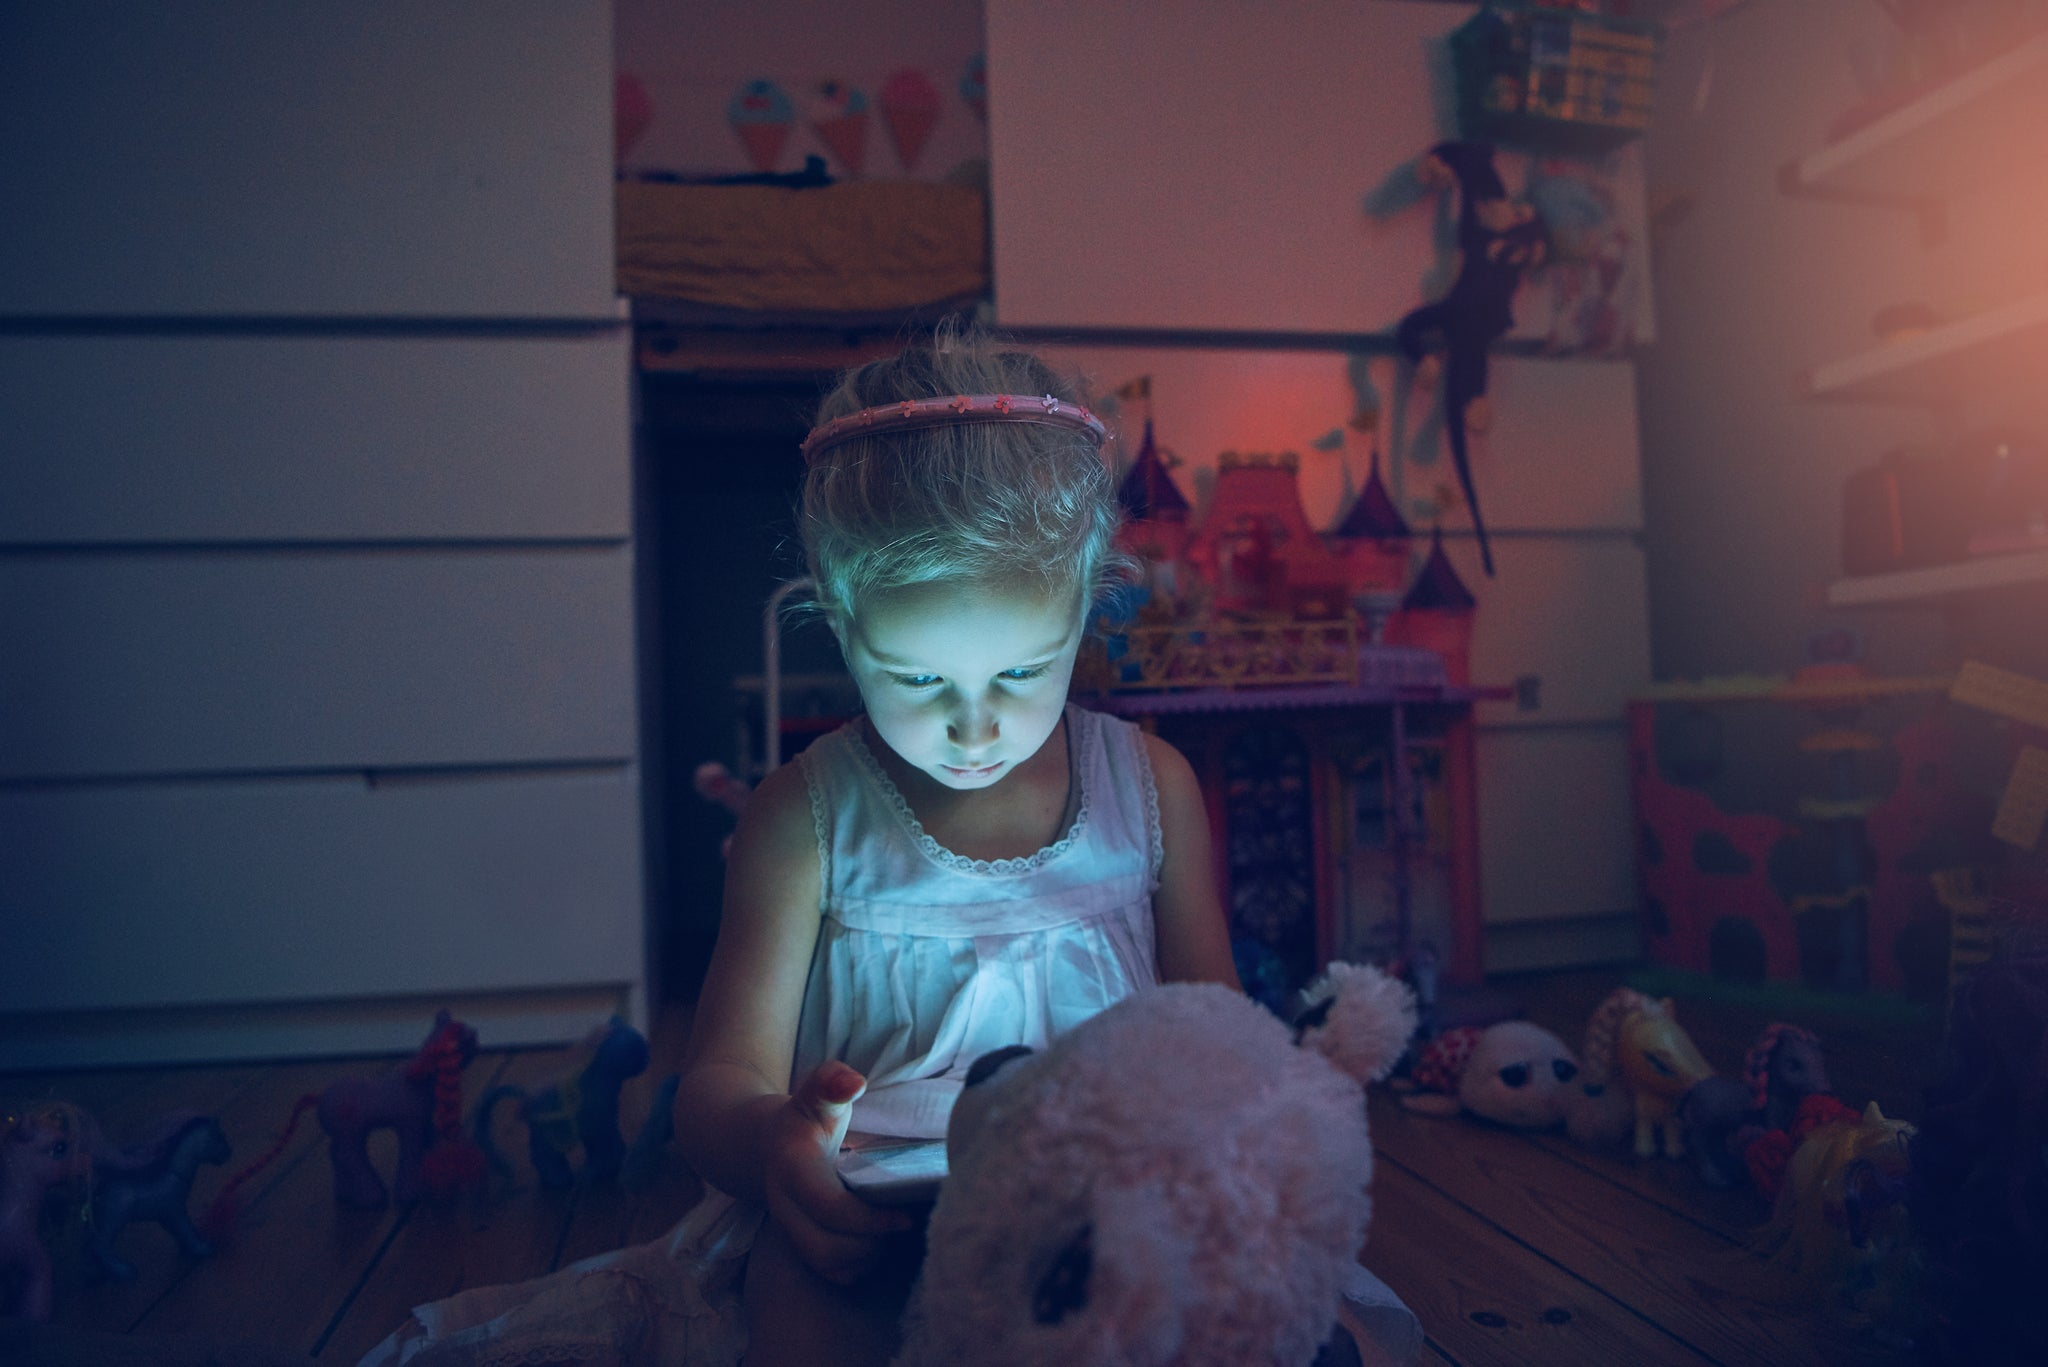 5 Ways to Protect Your Children from Online Predators